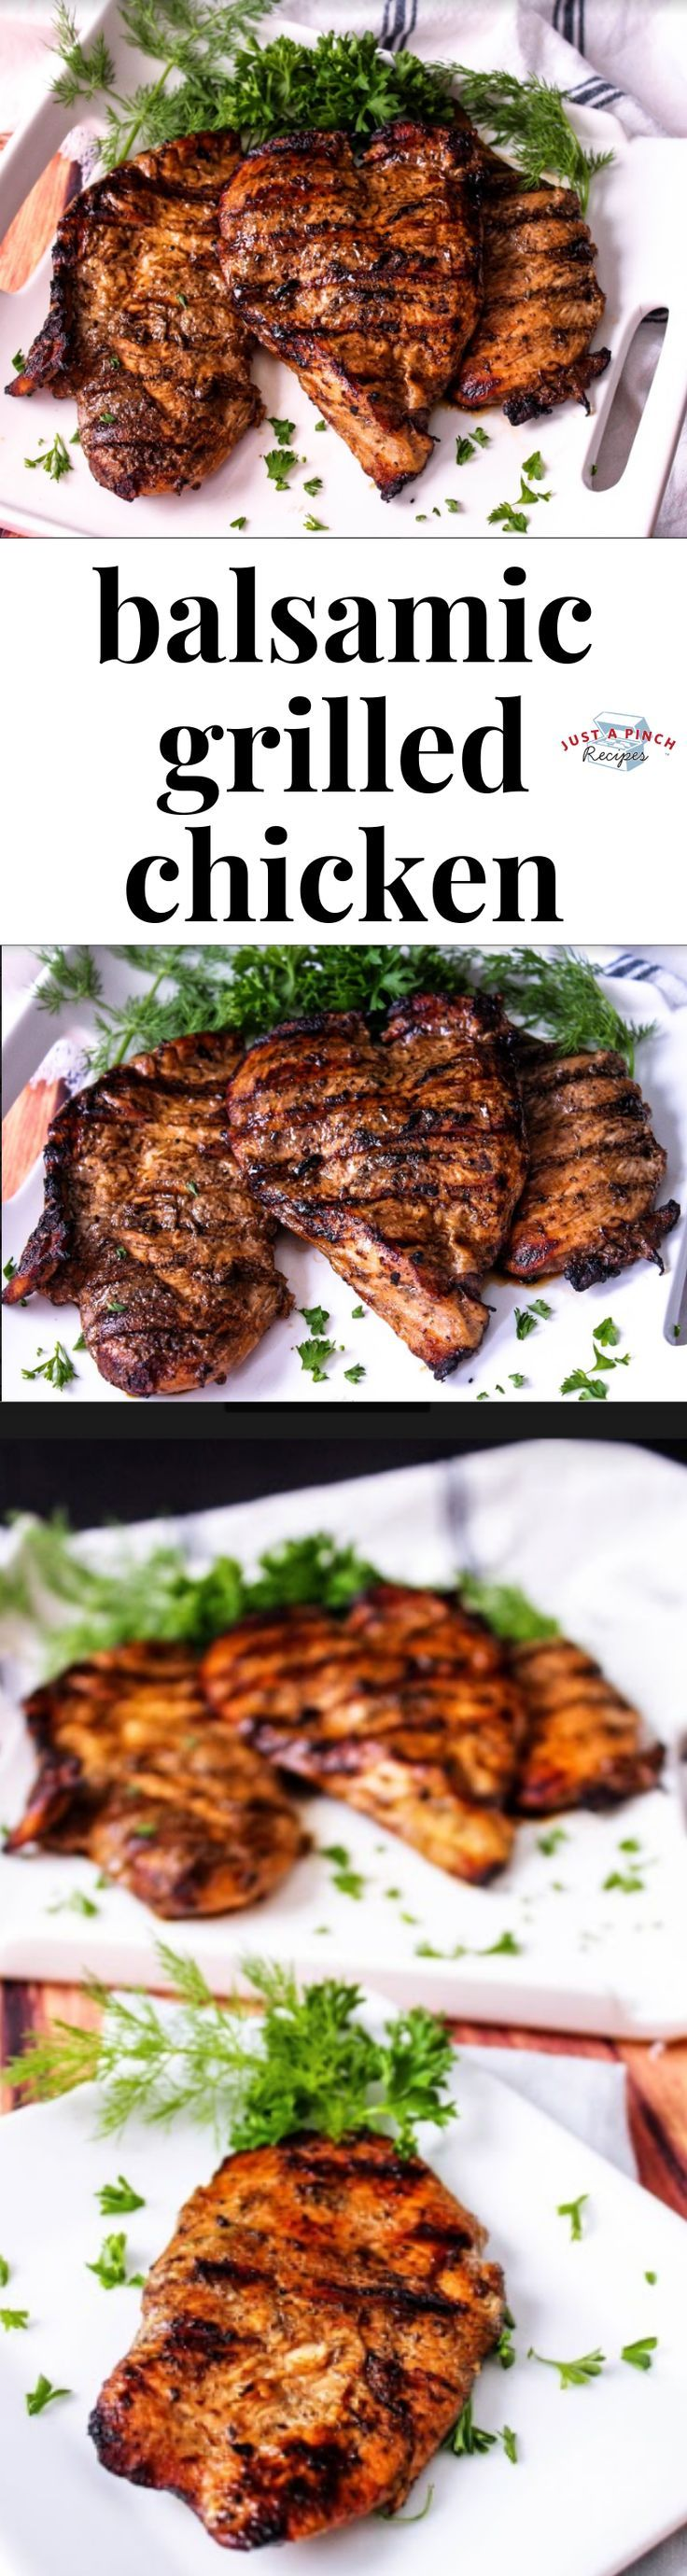 Balsamic Grilled Chicken   - Suns Out, Grills Out - Grilling Recipes